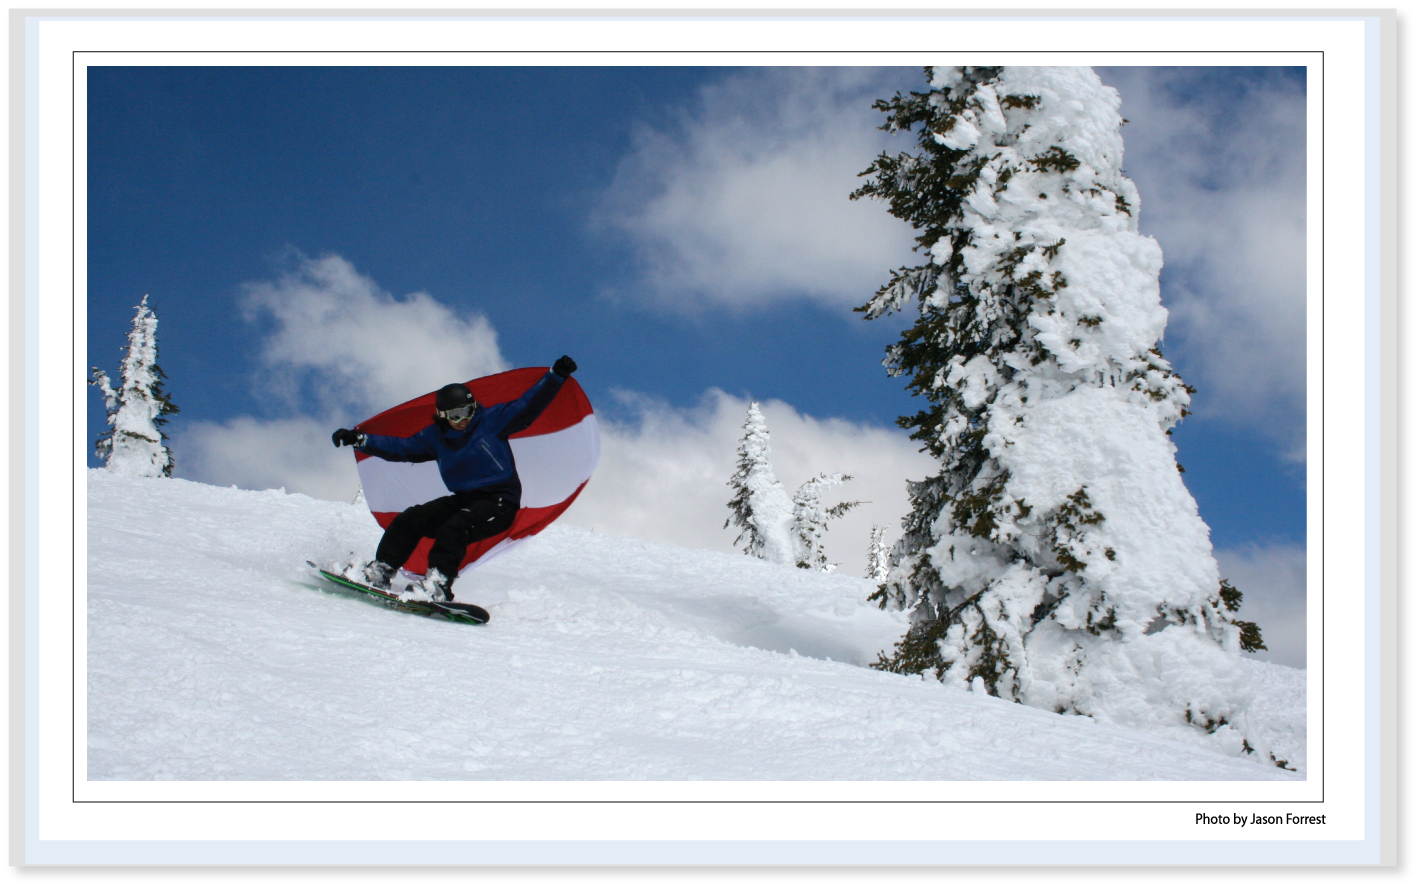 SPORTING-SAILS - Snowboarding Parachute Body-Sails